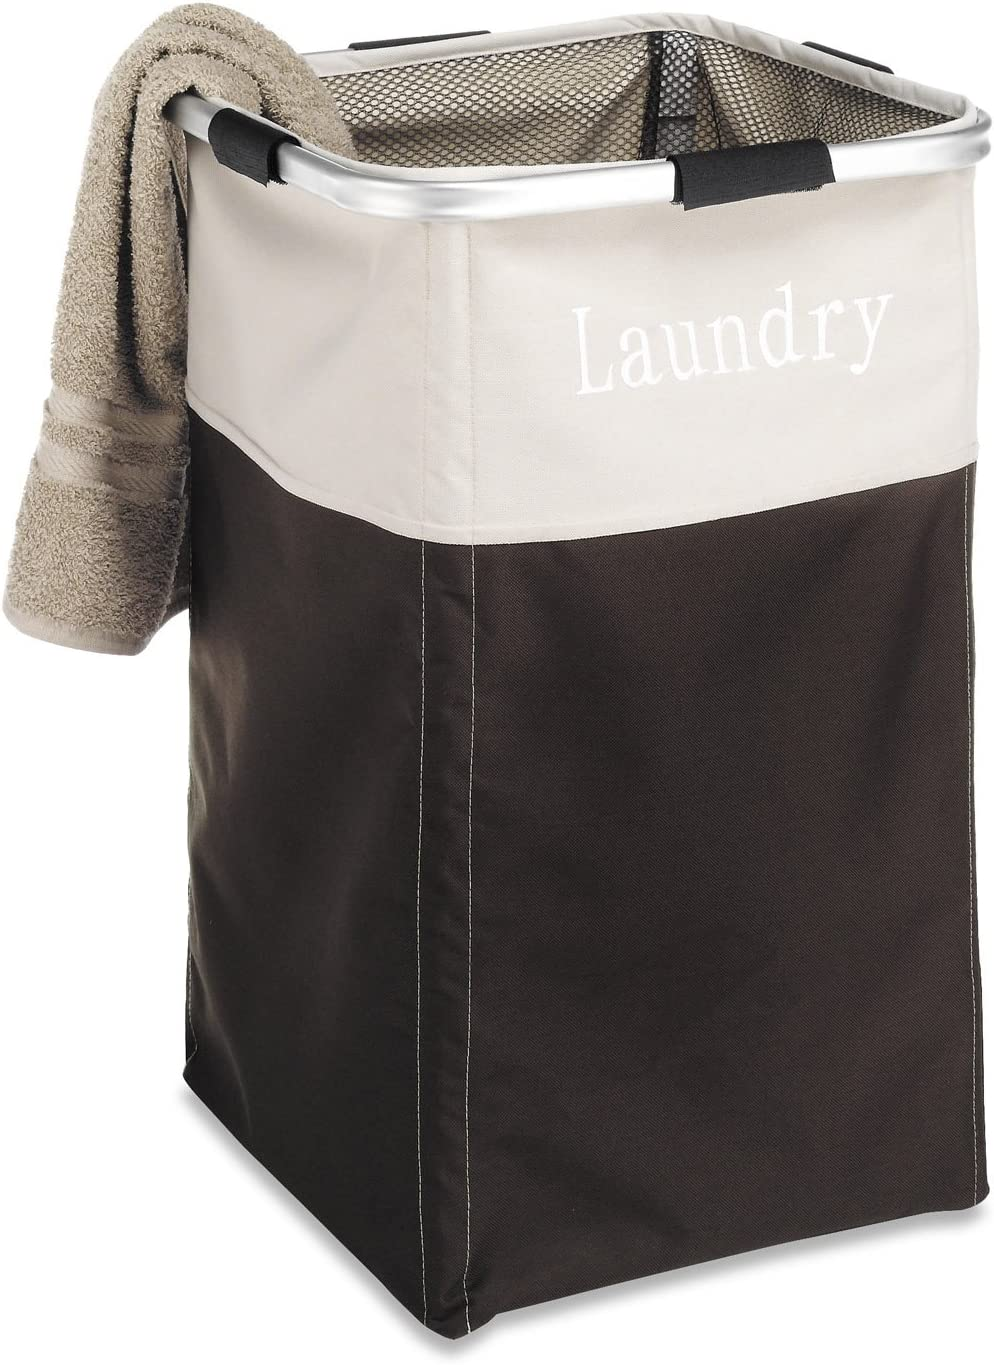 Whitmor Easy Care Laundry Hamper - Espresso